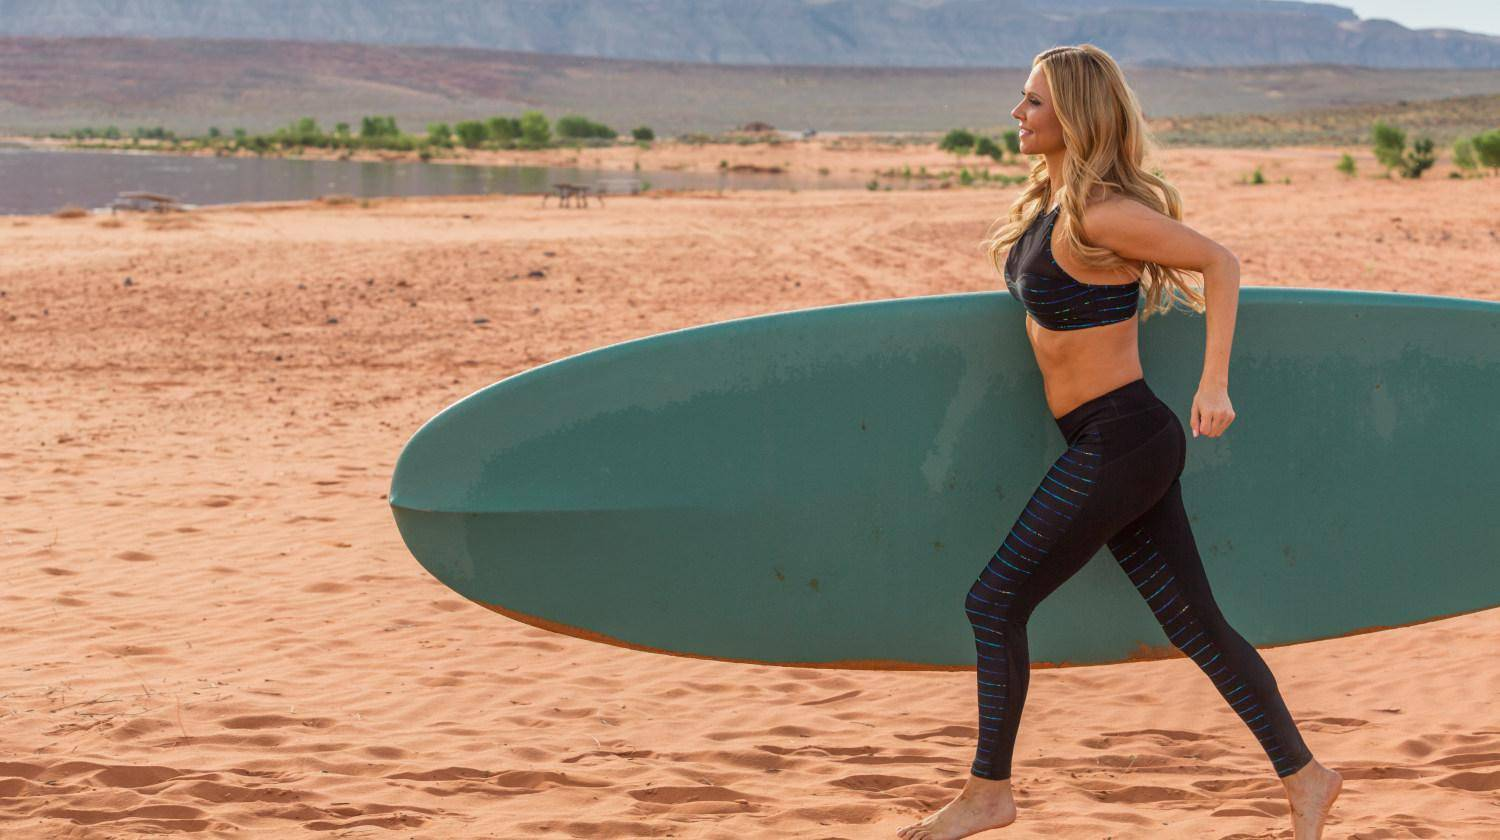 Marzia Prince paddle boarding | Foods That Give You Energy and How To Get The Most Out Of Them | food for energy | Featured